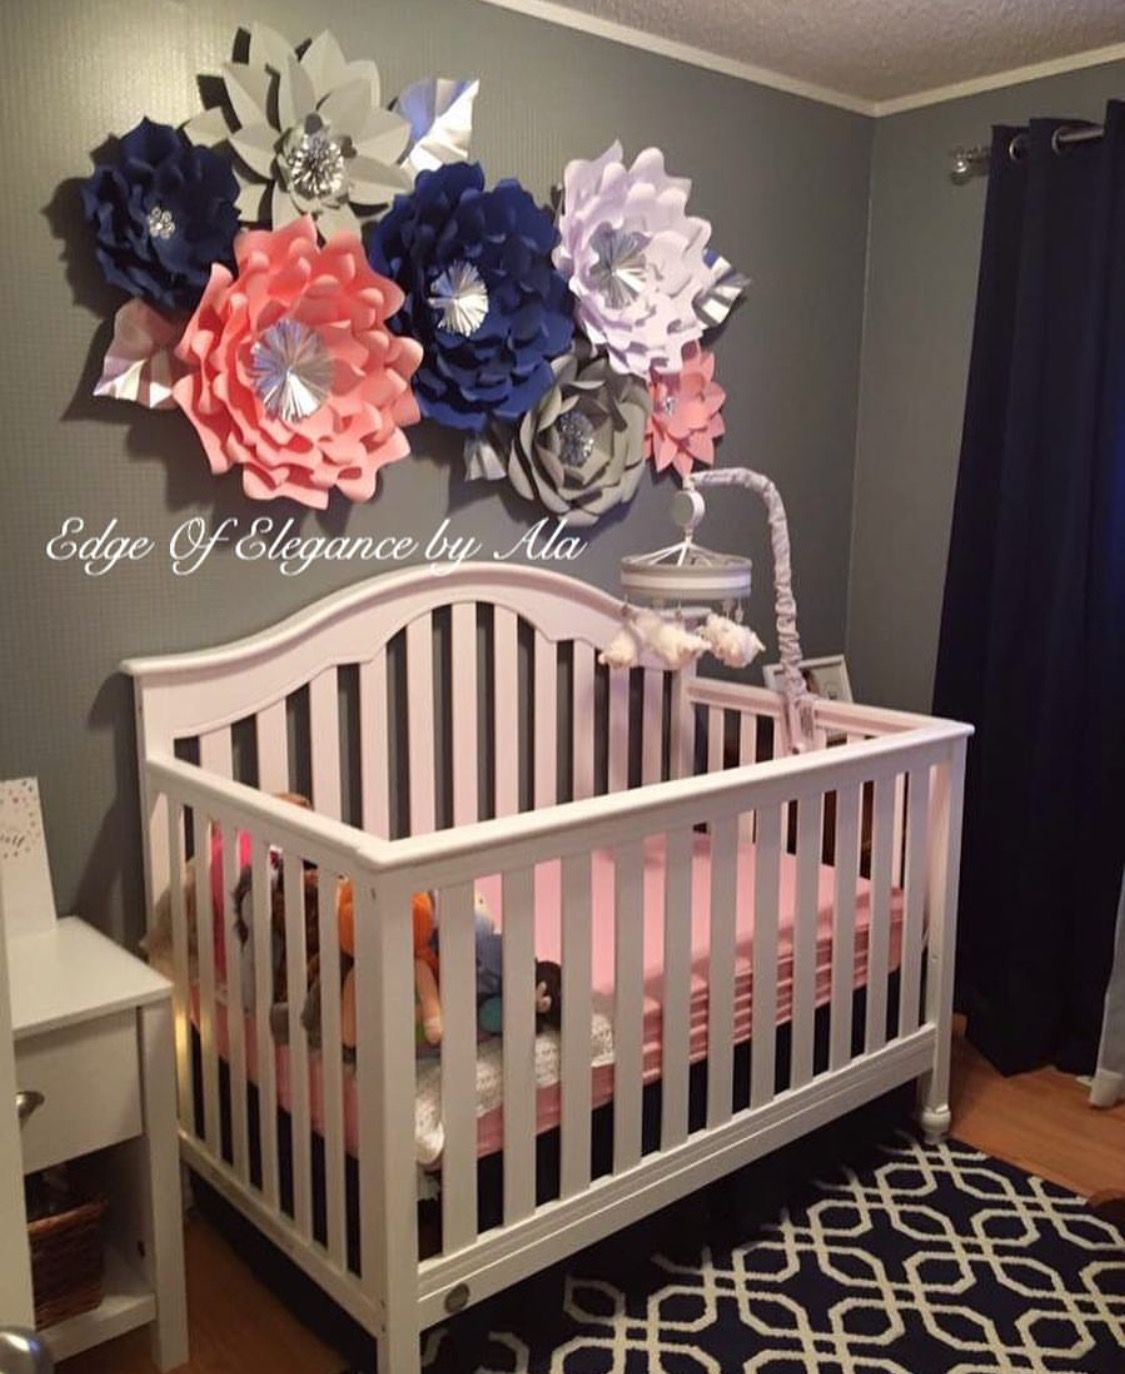 baby girl room decoration items #babygirlroom | Baby girl nursery